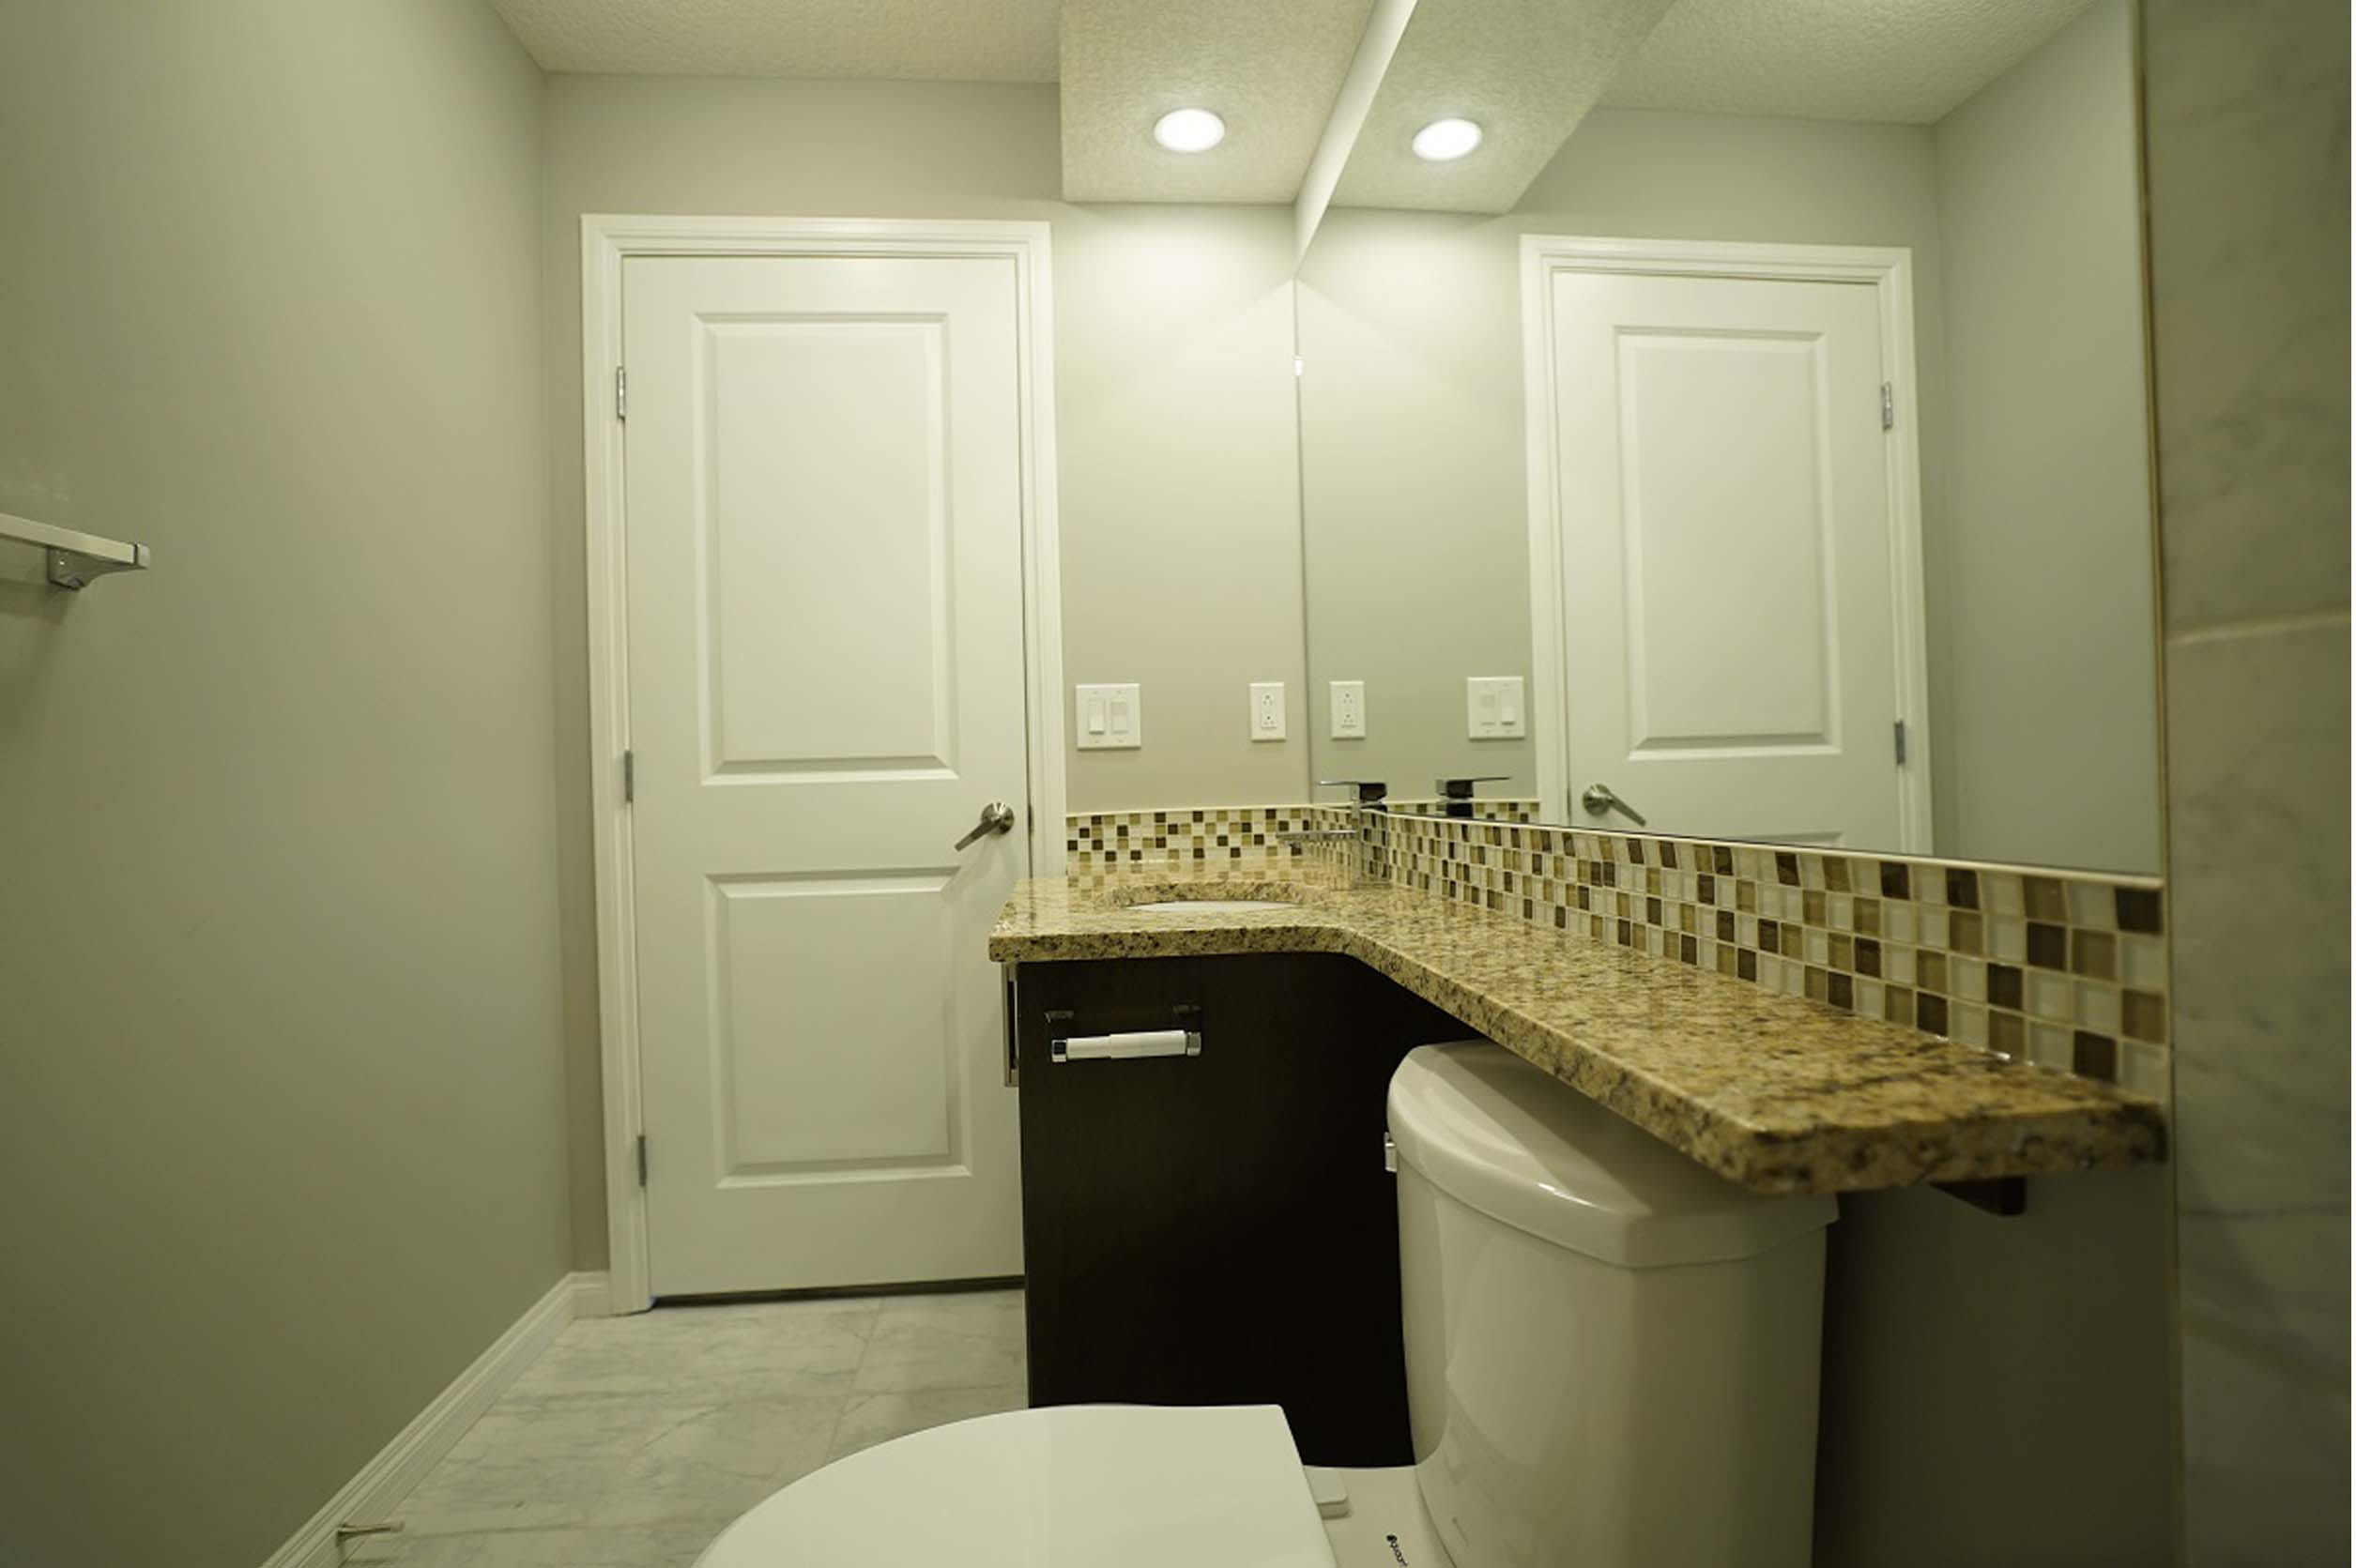 Bathroom Renovation Calgary And Surrounding Areas